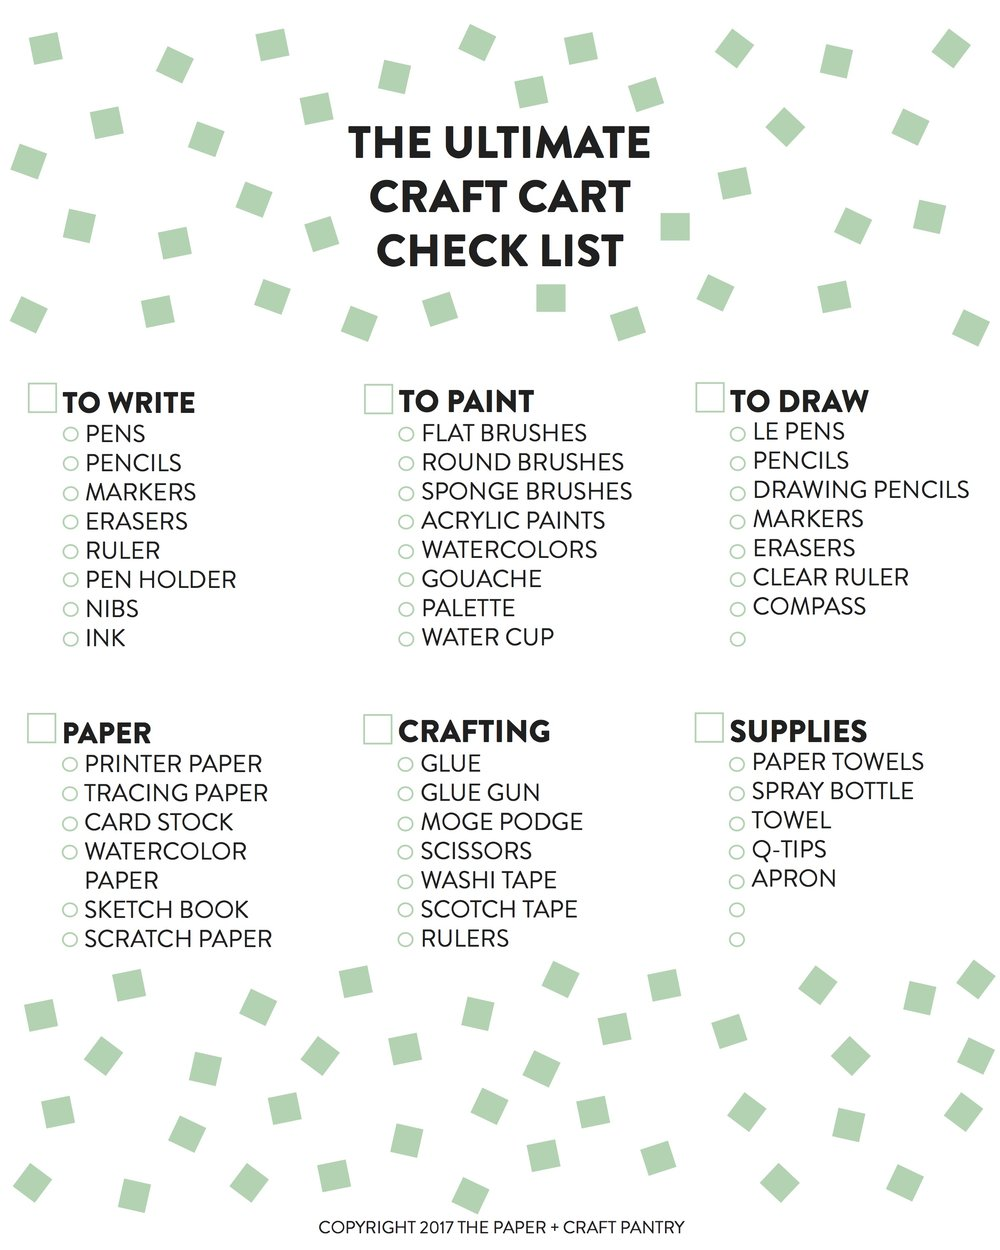 Paper-Craft-Pantry-Blog-Printable-Ultimate-Craft-Cart-Check-List (1).jpg